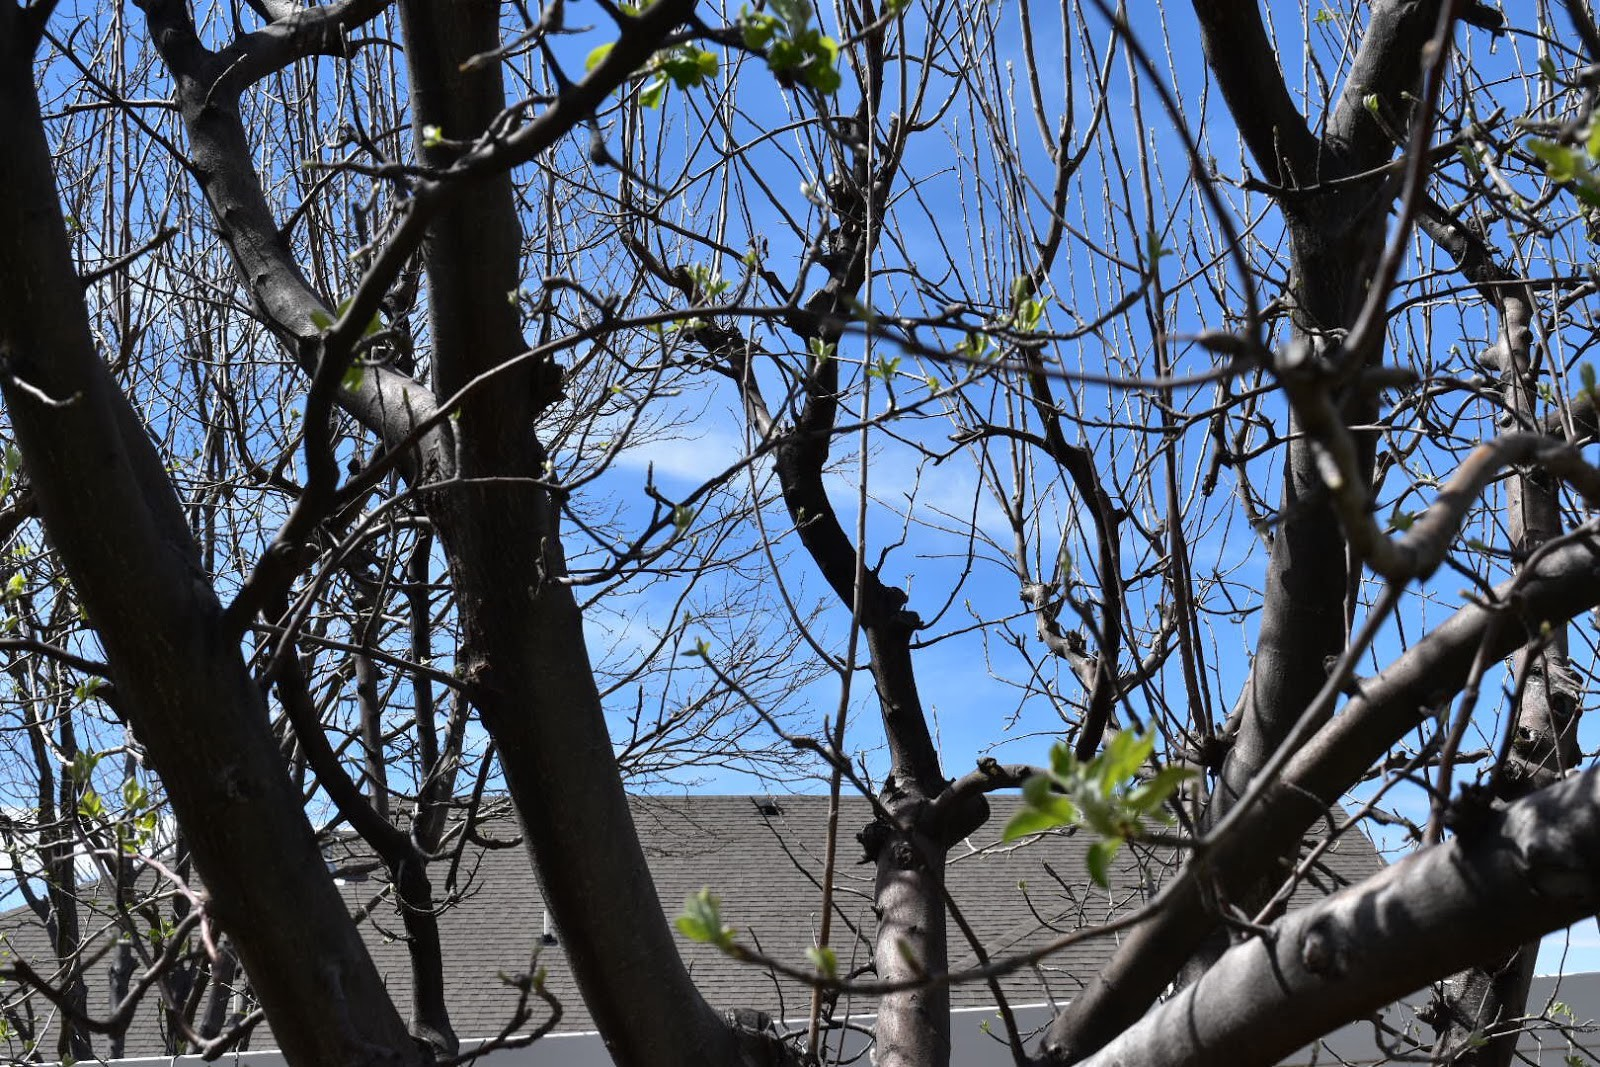 The peach tree after pruning allows sunlight to get through into the inner part of the tree.